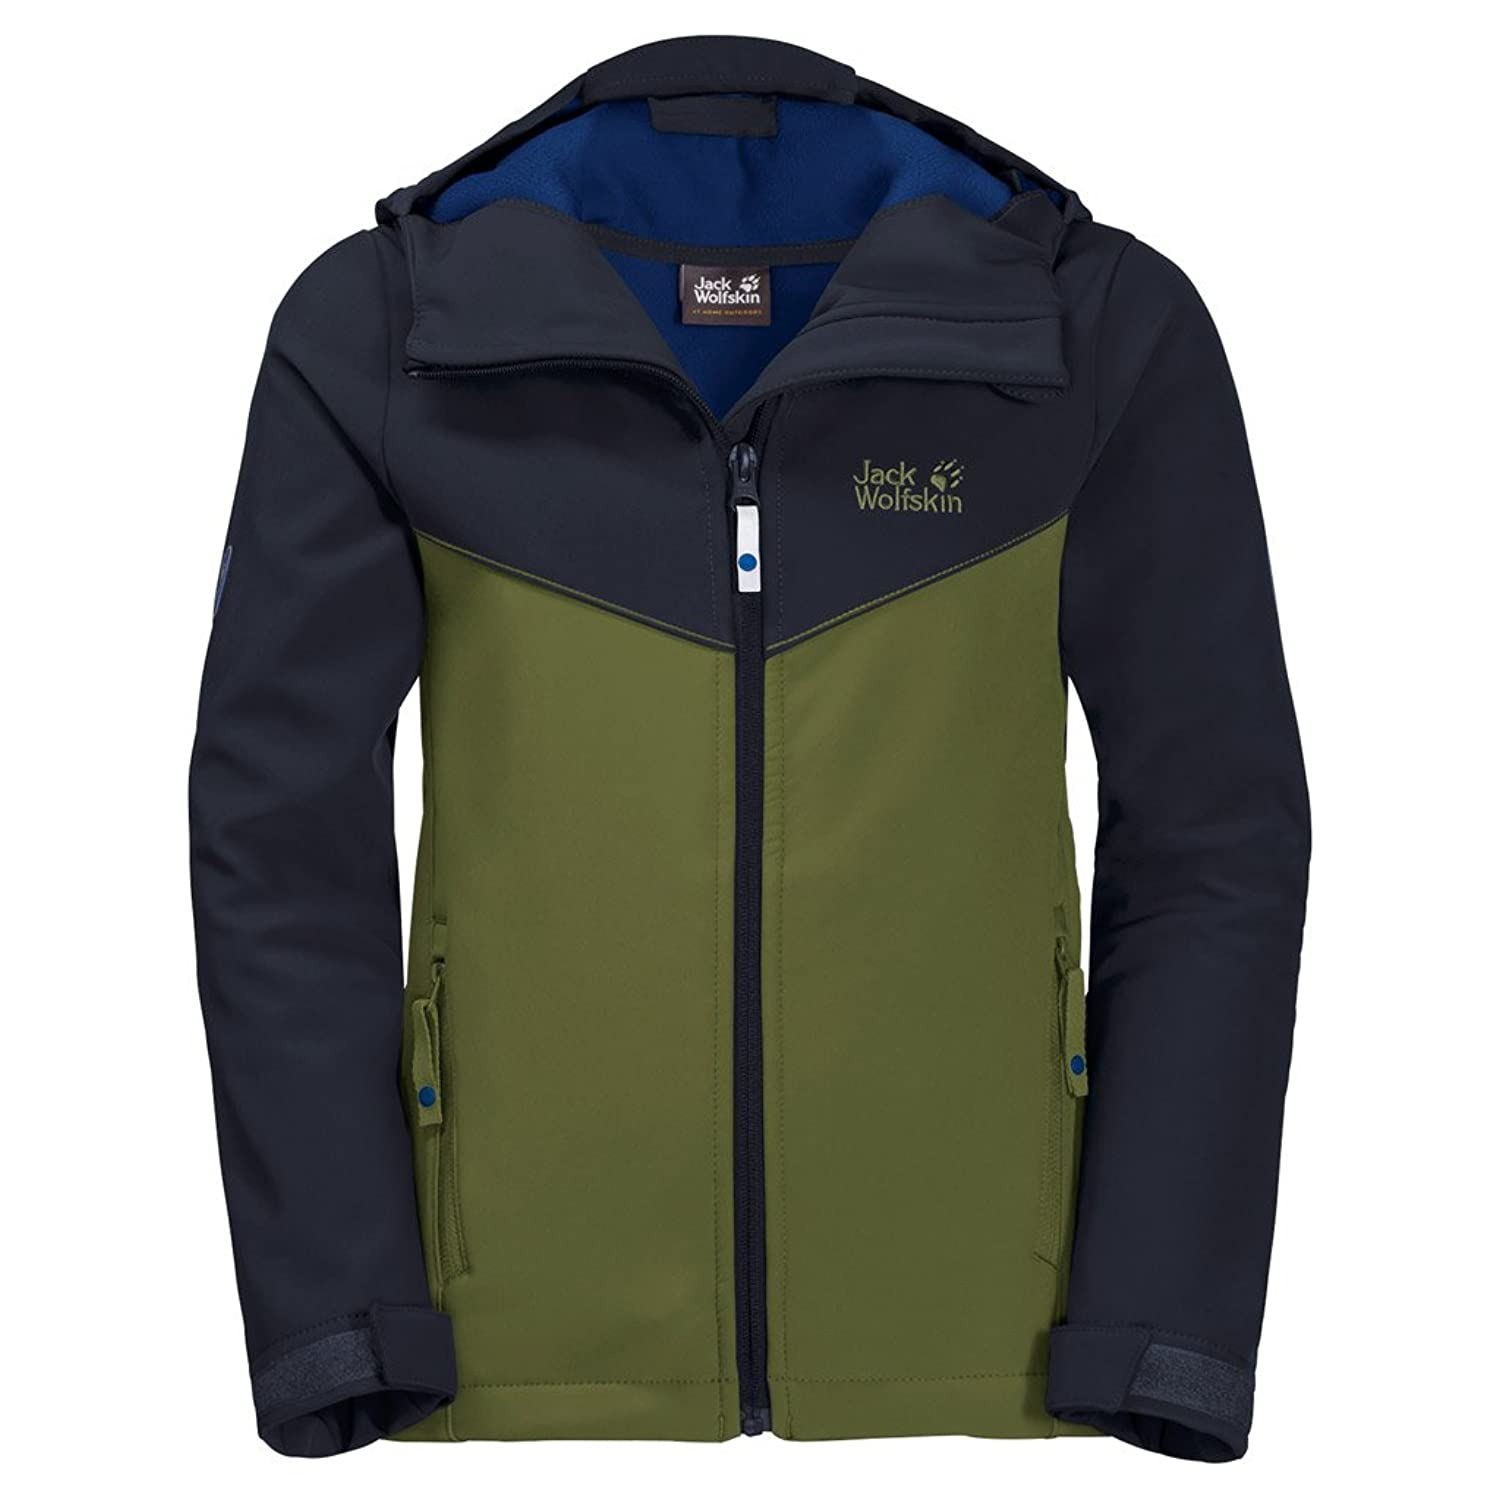 Jack Wolfskin Kids OUTERWEAR ボーイズ US サイズ: 11-12 Years カラー: グリーン